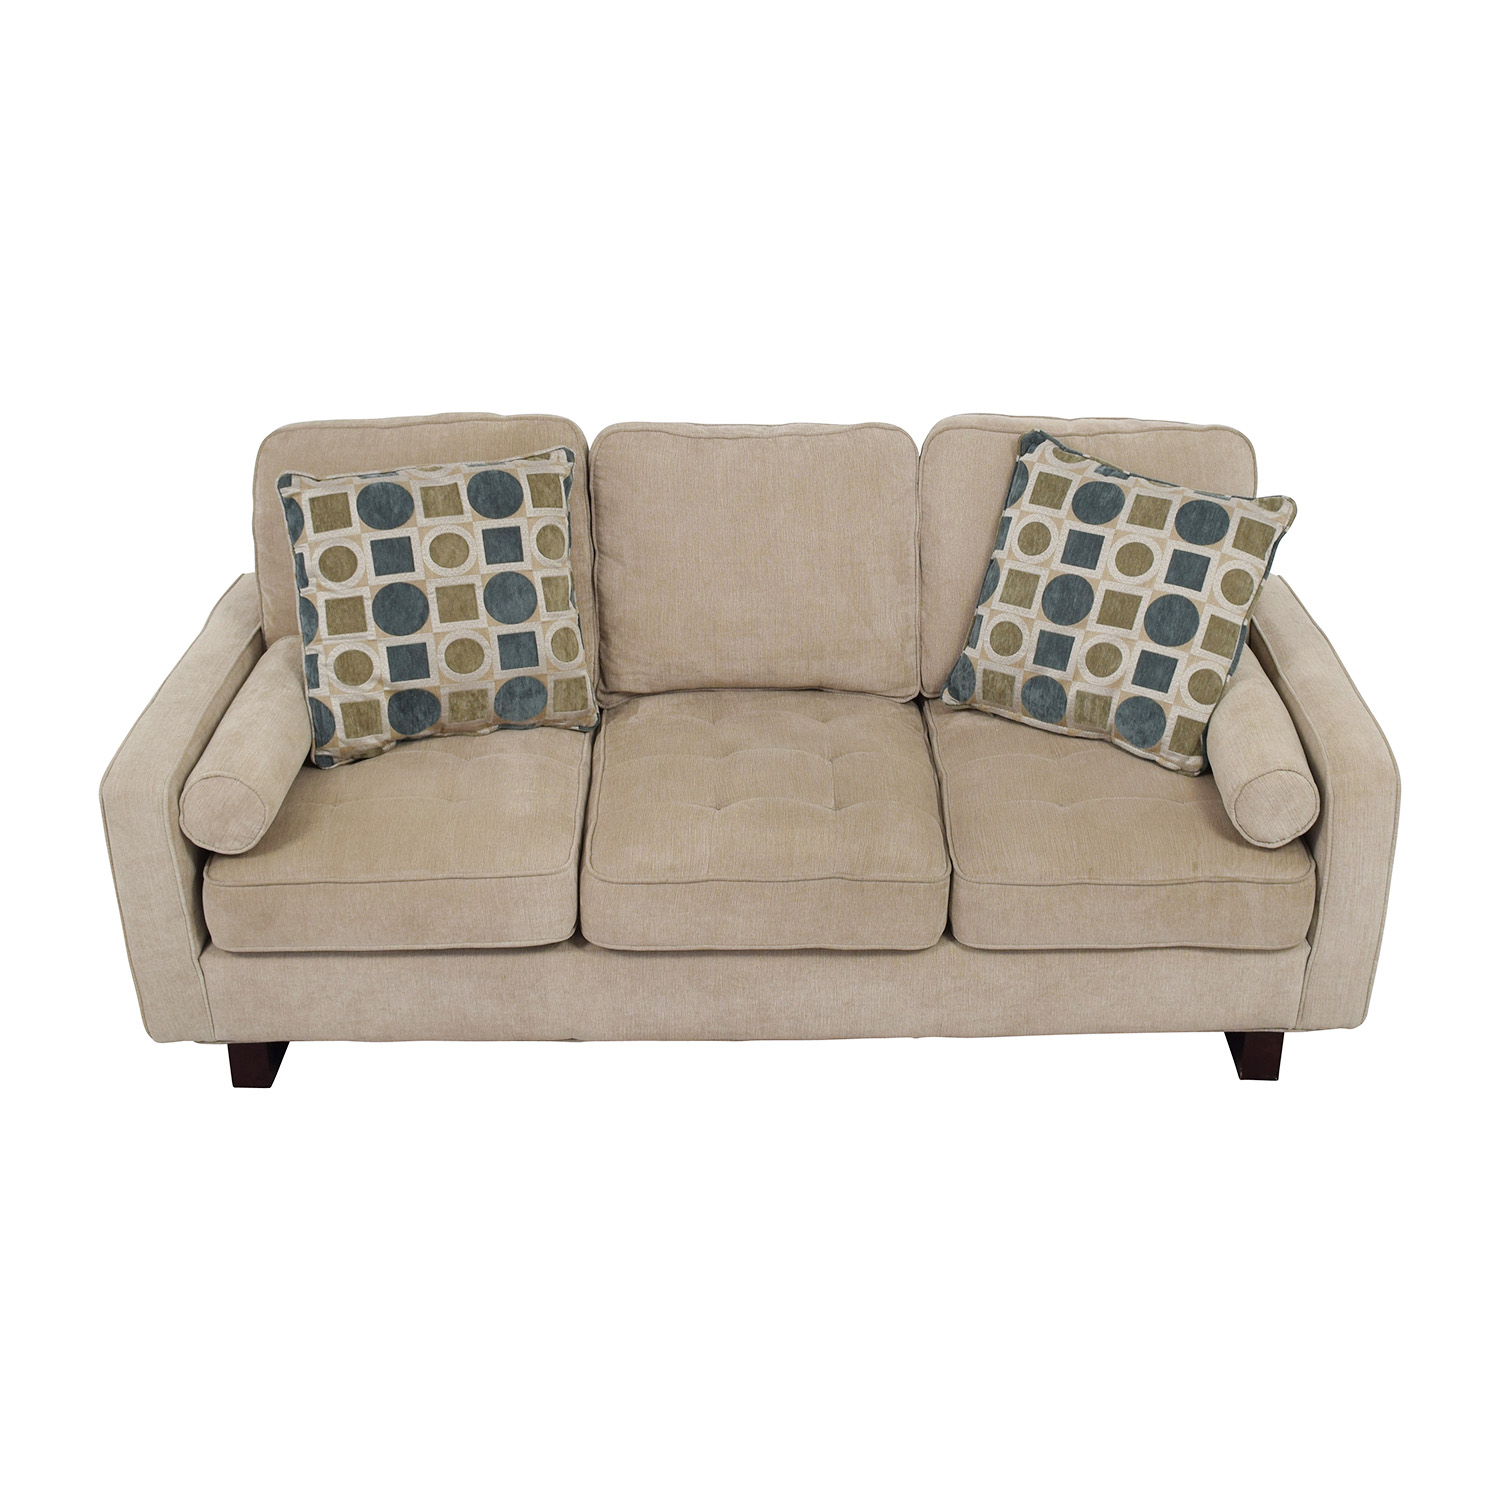 Bobs Discount Furniture Bobs Discount Furniture Three-Seater Tan Couch dimensions